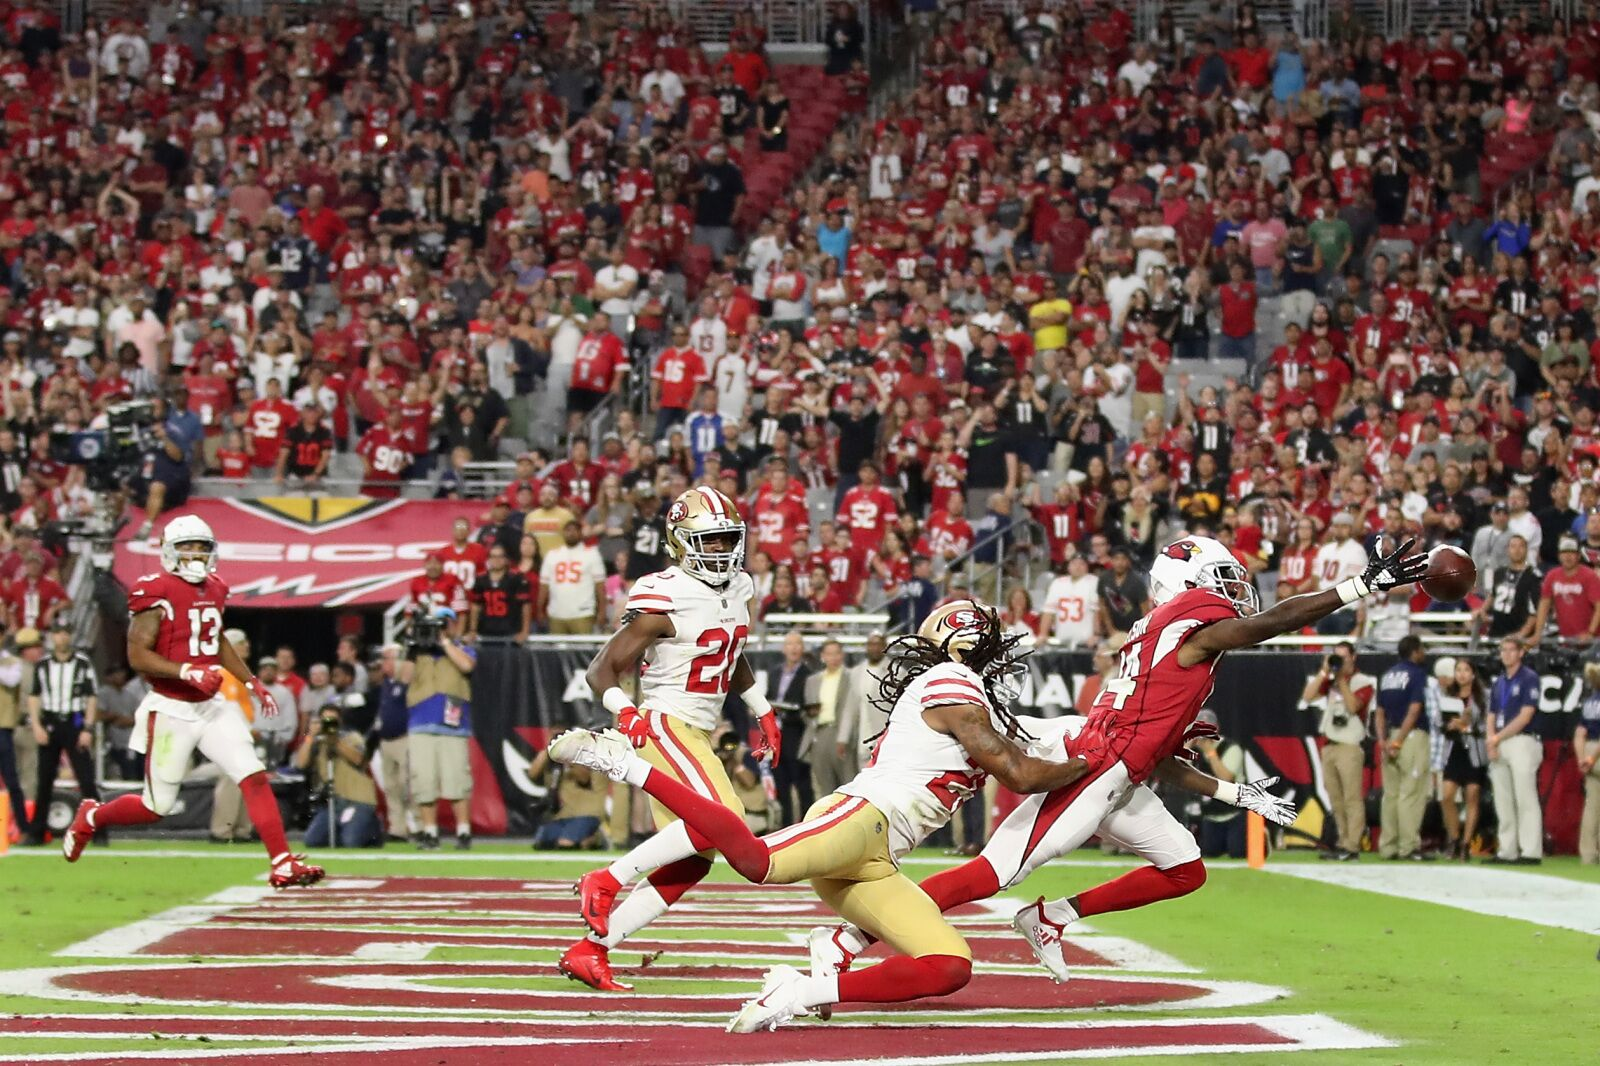 Pass interference replay rule presents challenge for 49ers' physical secondary